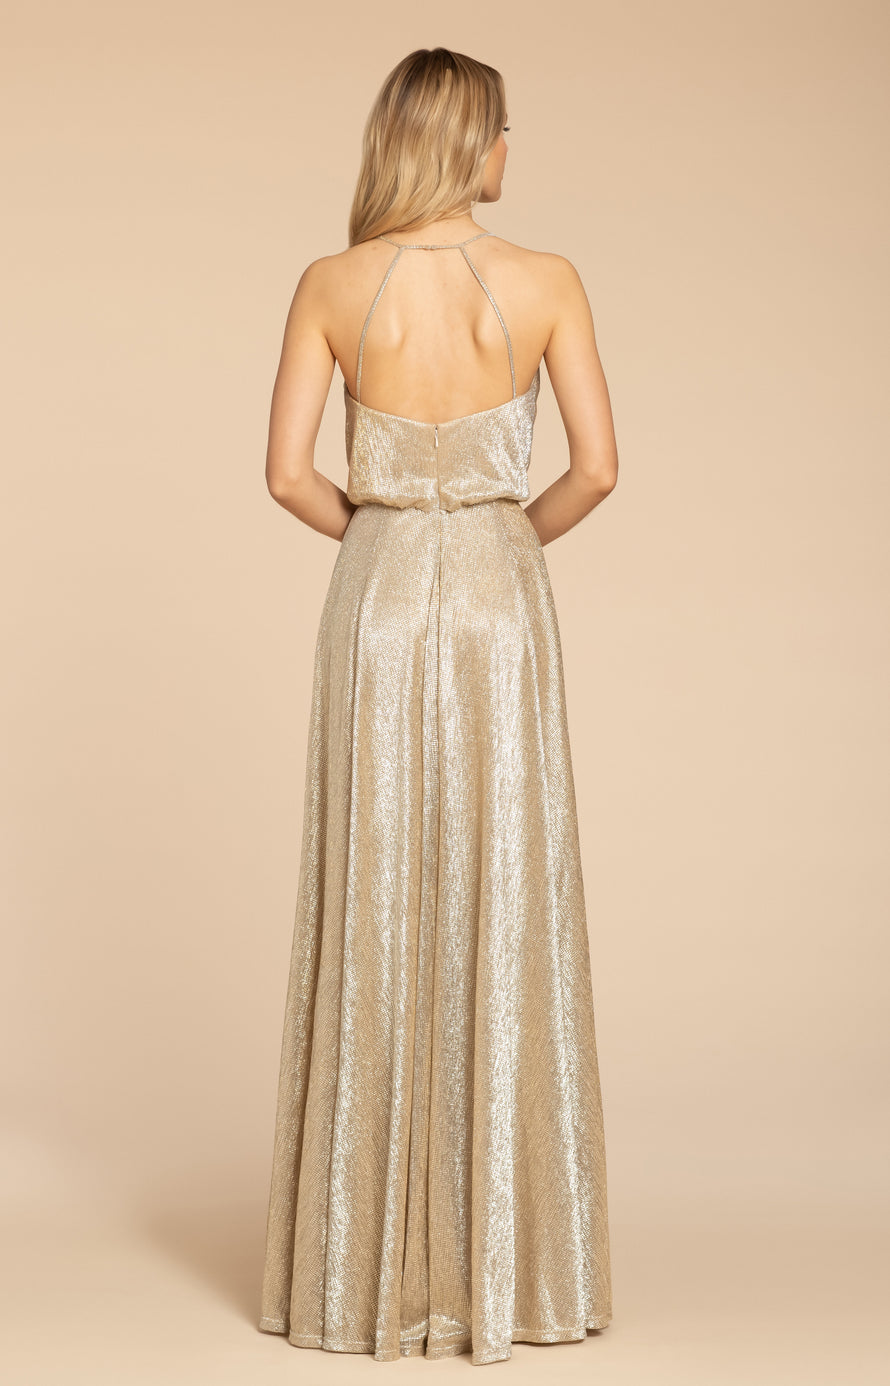 liquid metallic A-line gown, bloused bodice with curved V-neckline, natural waist, circular skirt